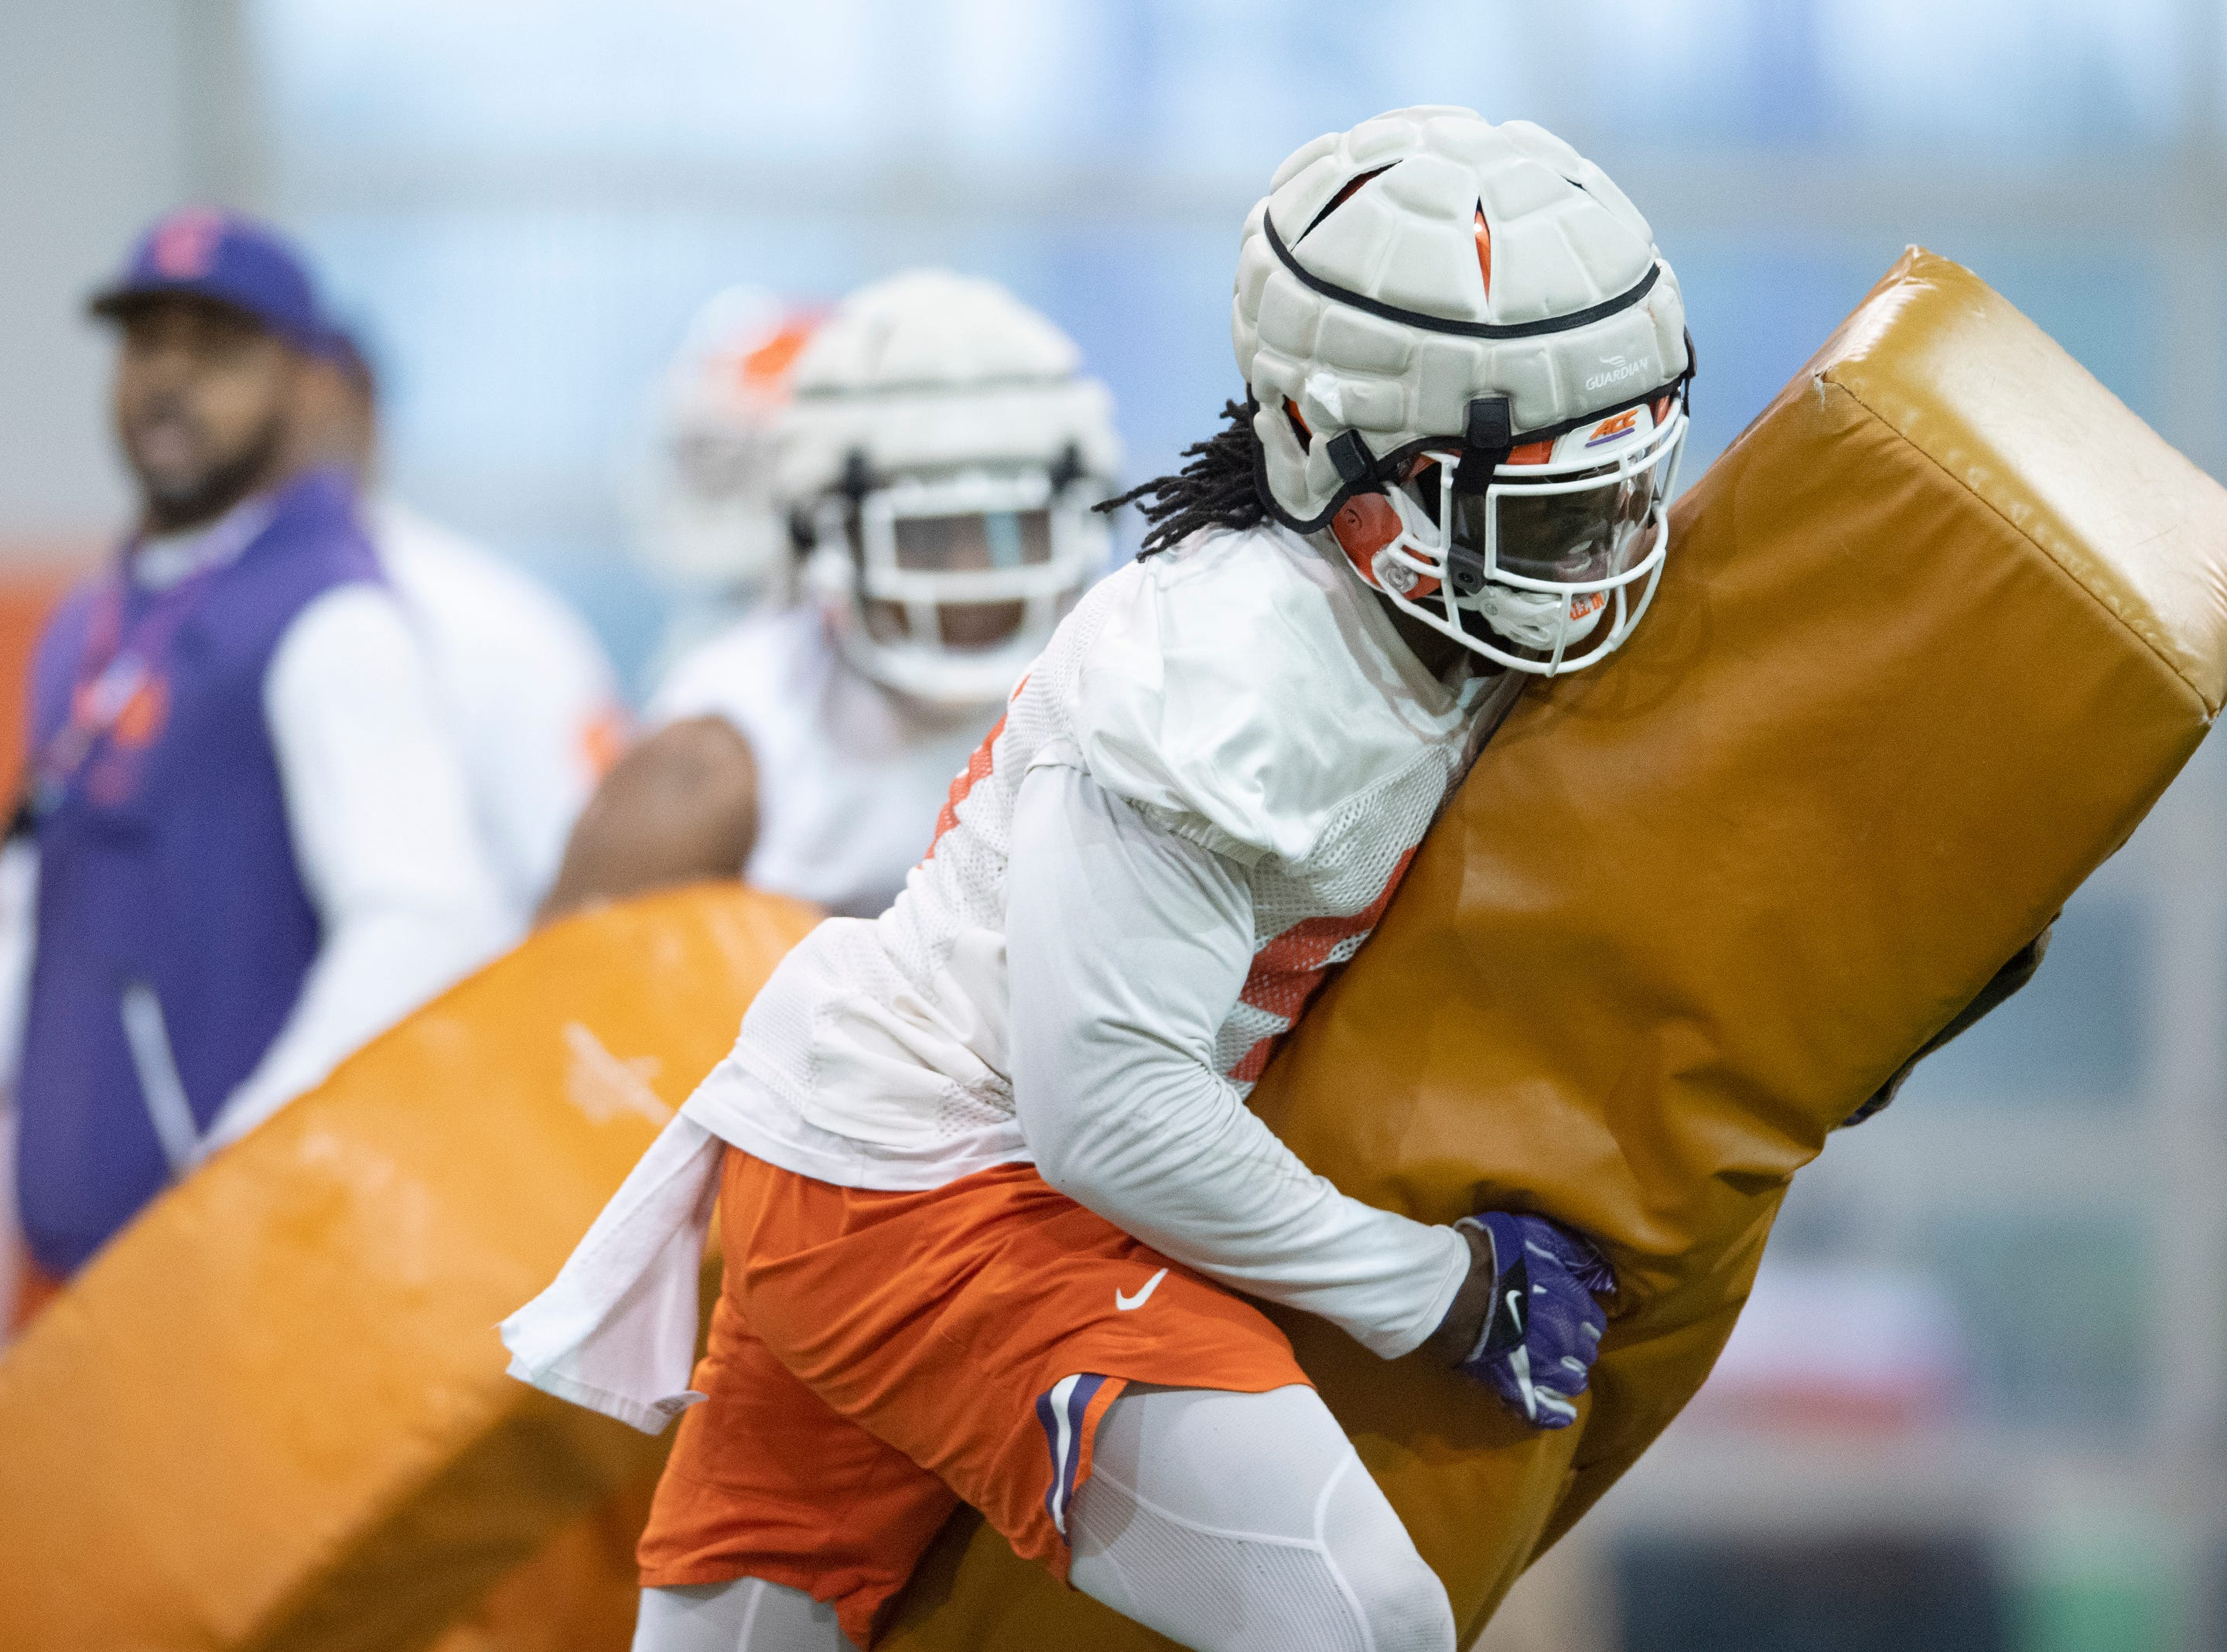 Clemson linebacker John Boyd (46) practices at the Poe Indoor Football Facility Friday, Mar. 1, 2019.